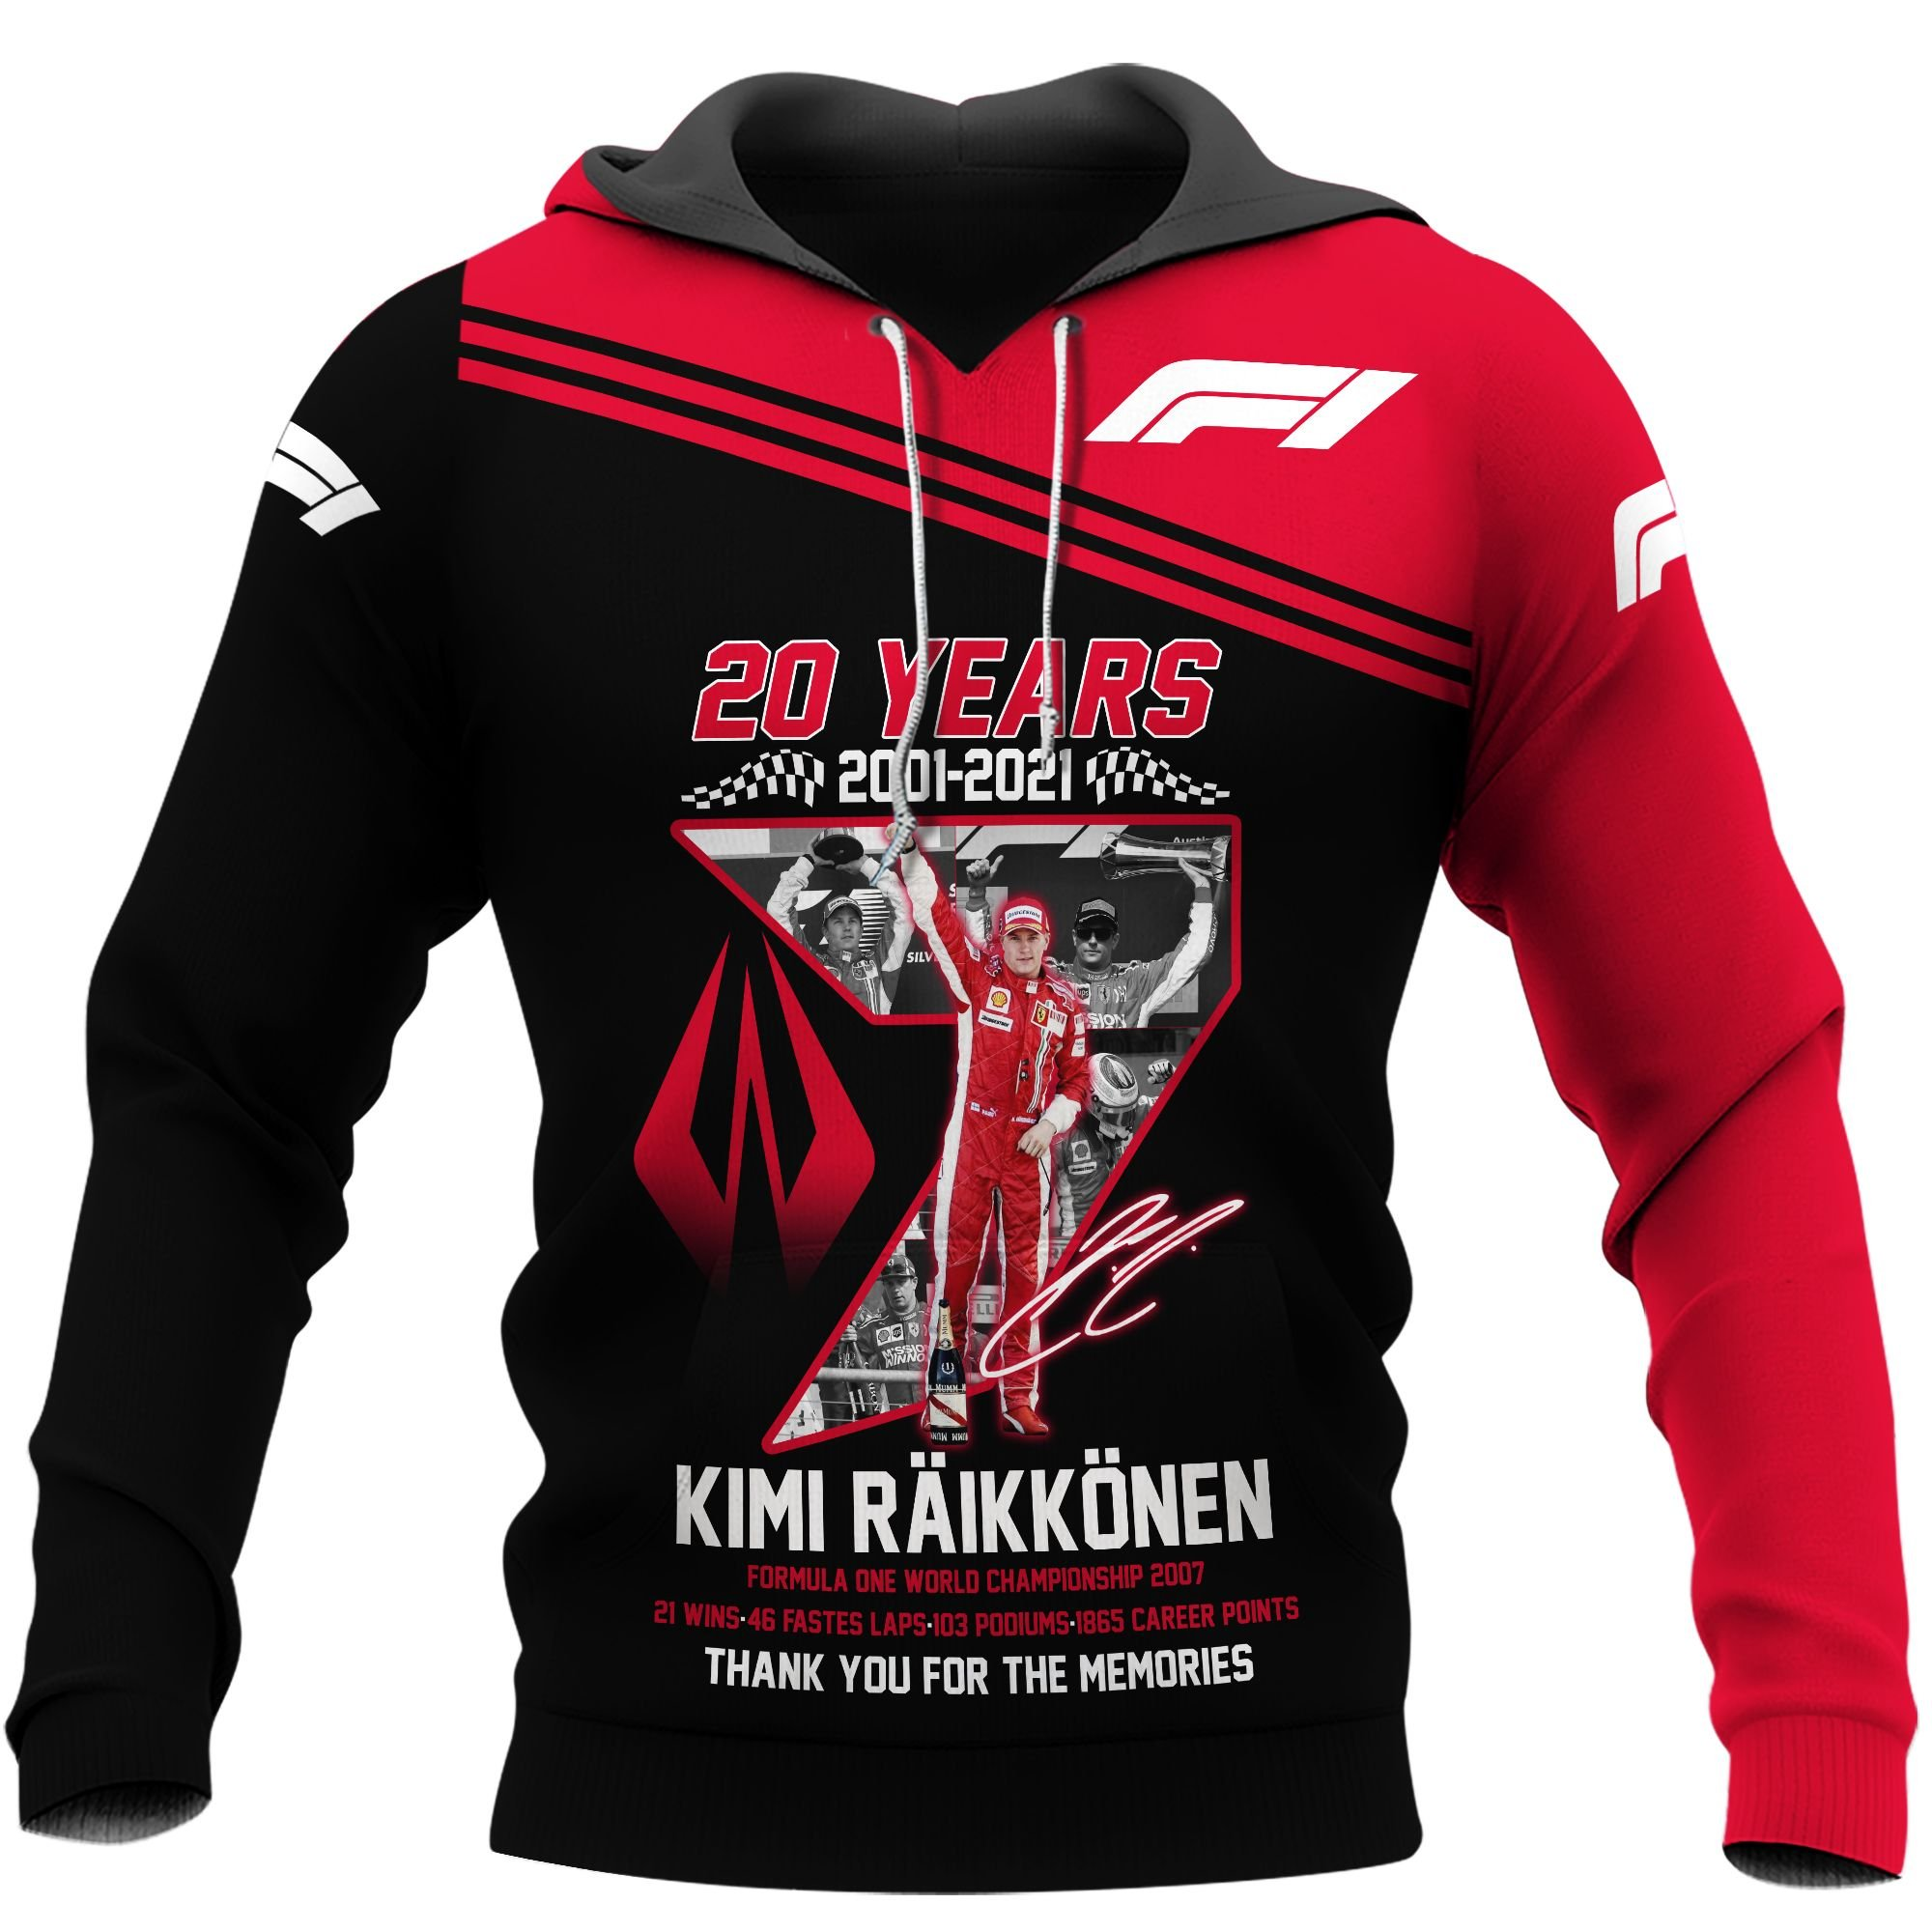 Kimi Raikkonen 20 years thank you for the memories 3d hoodie - LIMITED EDITION